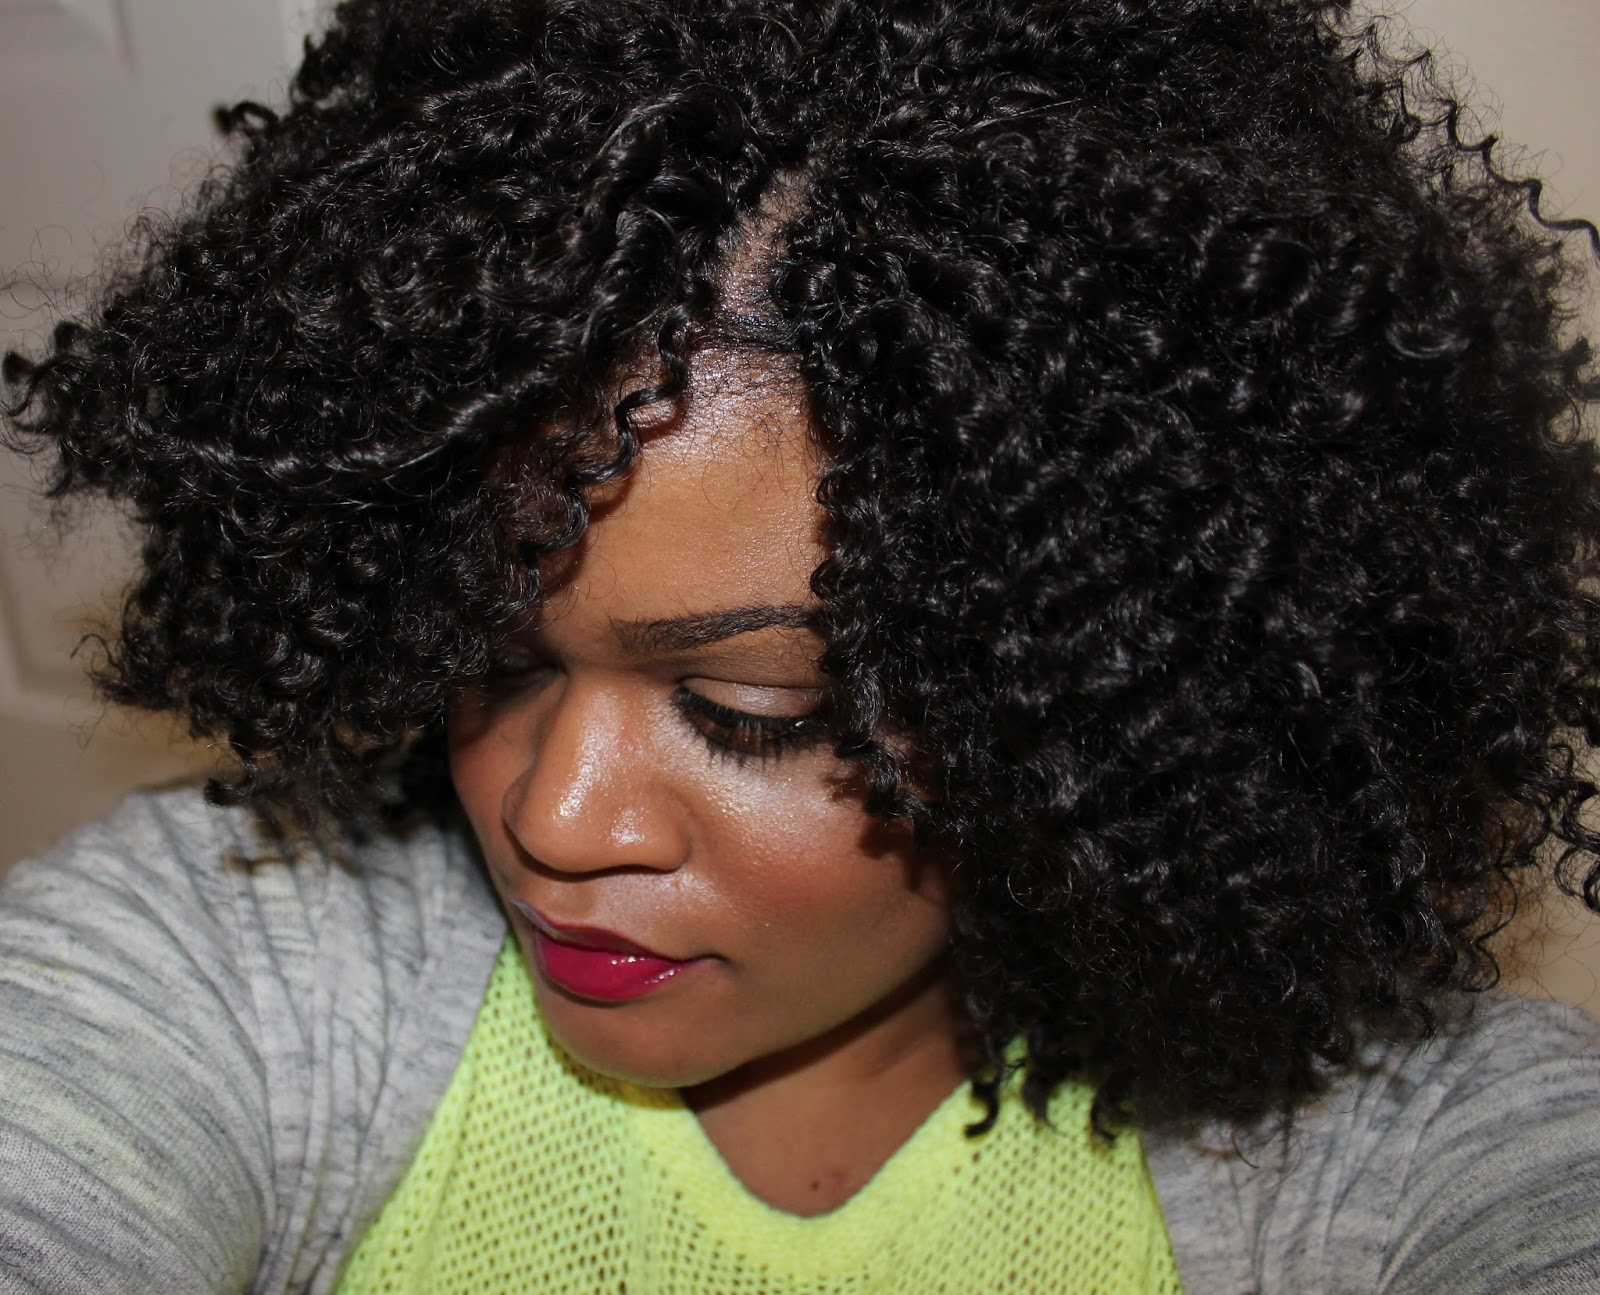 Crochet Hair To Buy : FabEllis: Natural Hair What Are Crochet Braids?